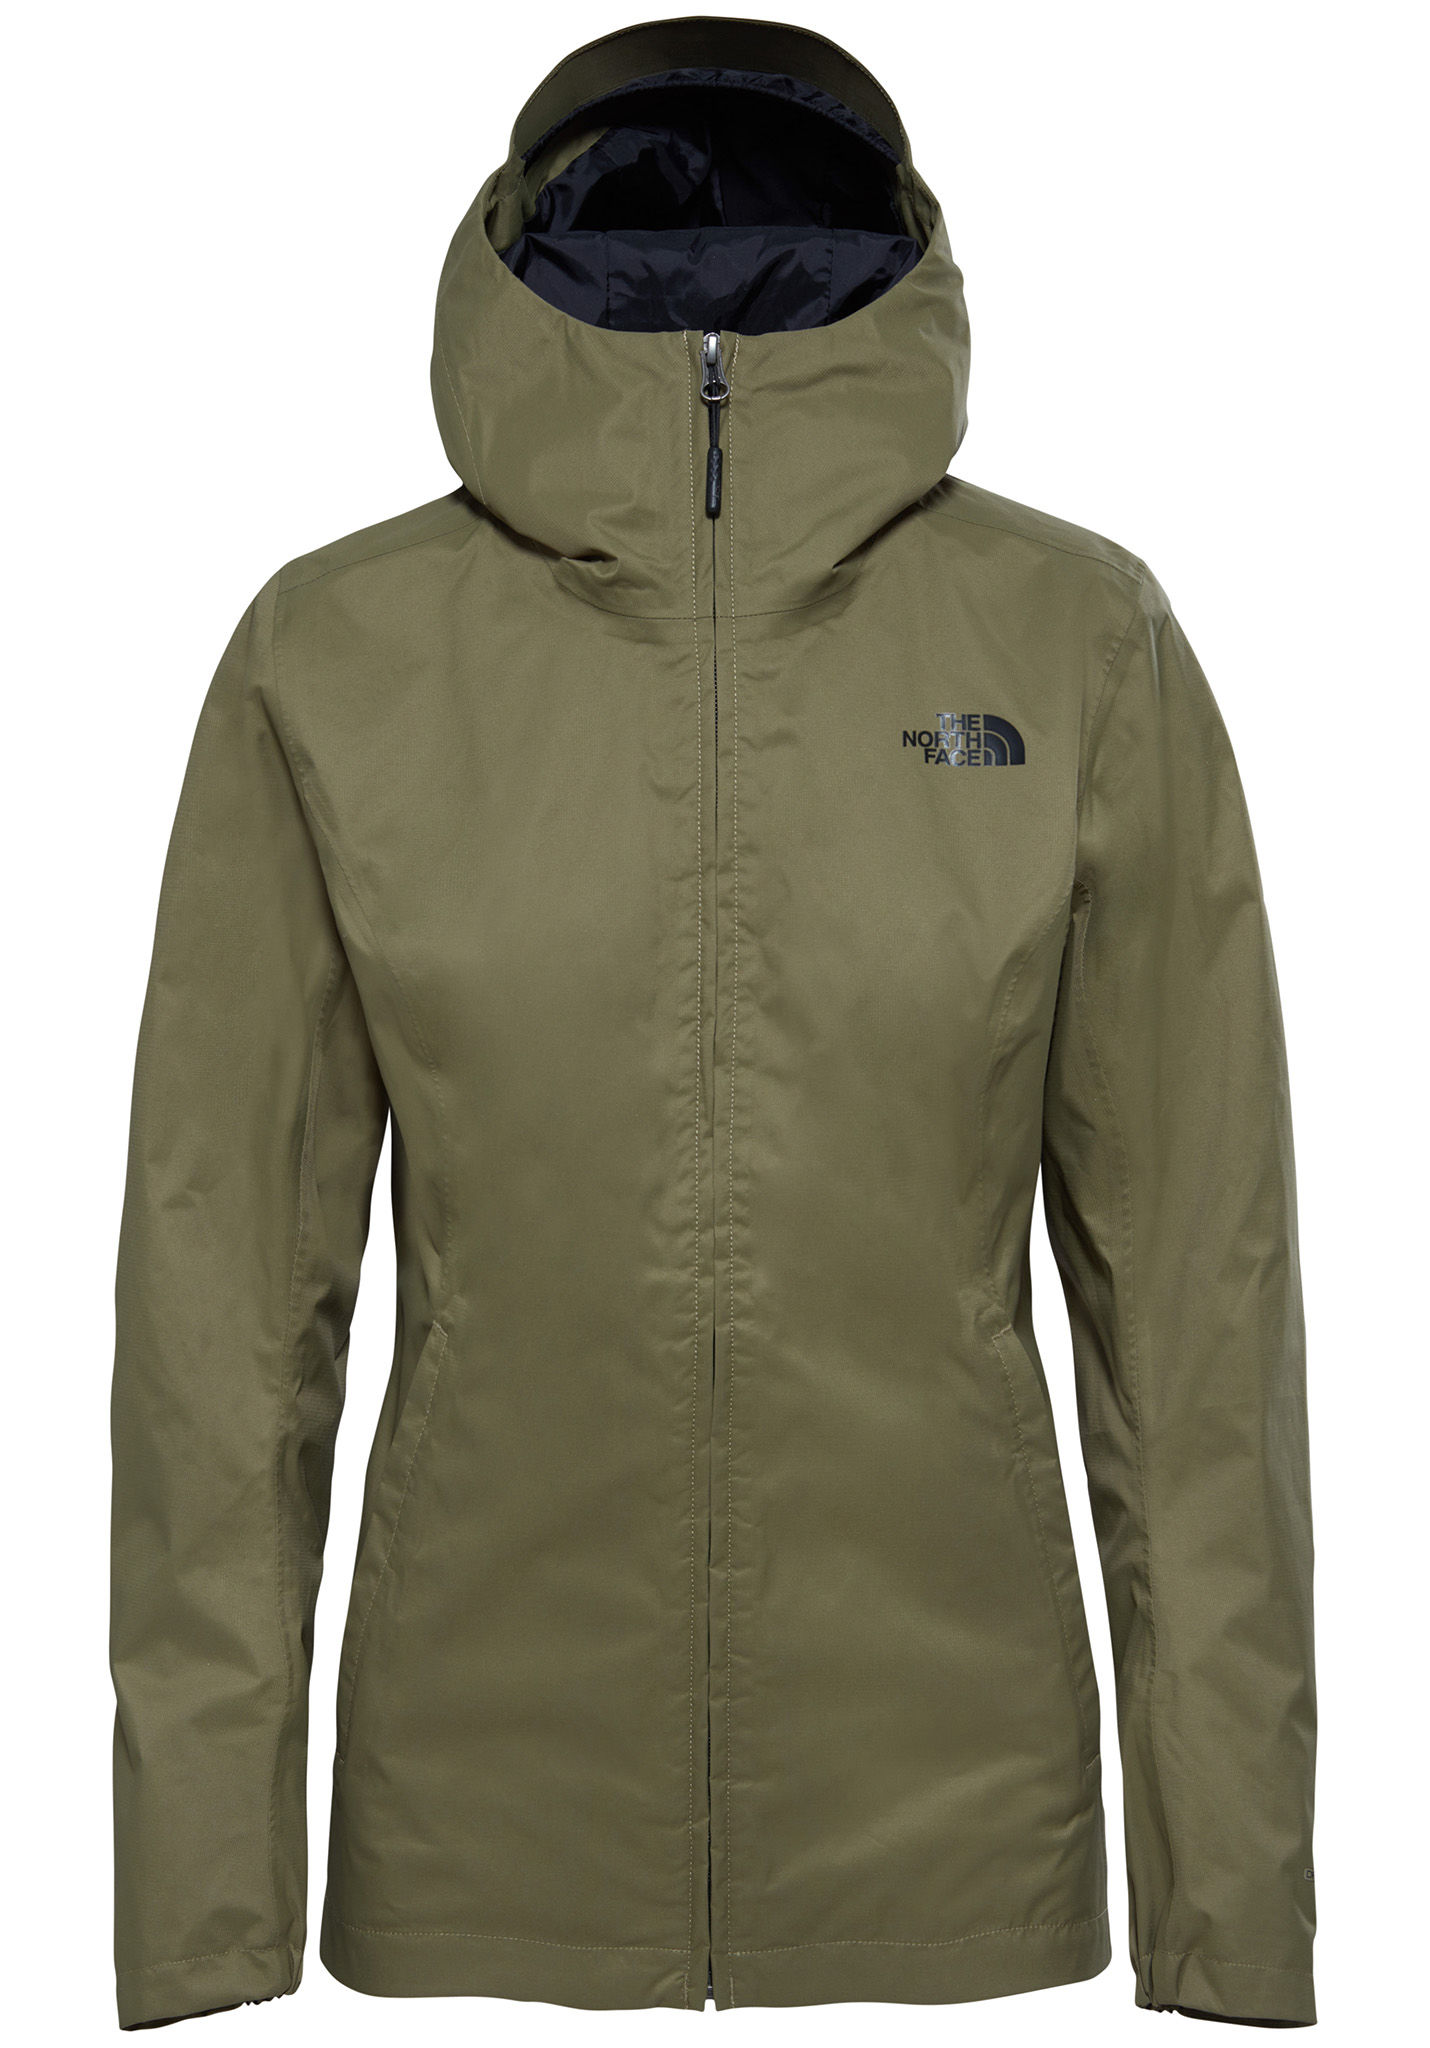 super popular 7e7e7 c5184 THE NORTH FACE Tanken Zip In - Outdoorjacke für Damen - Grün